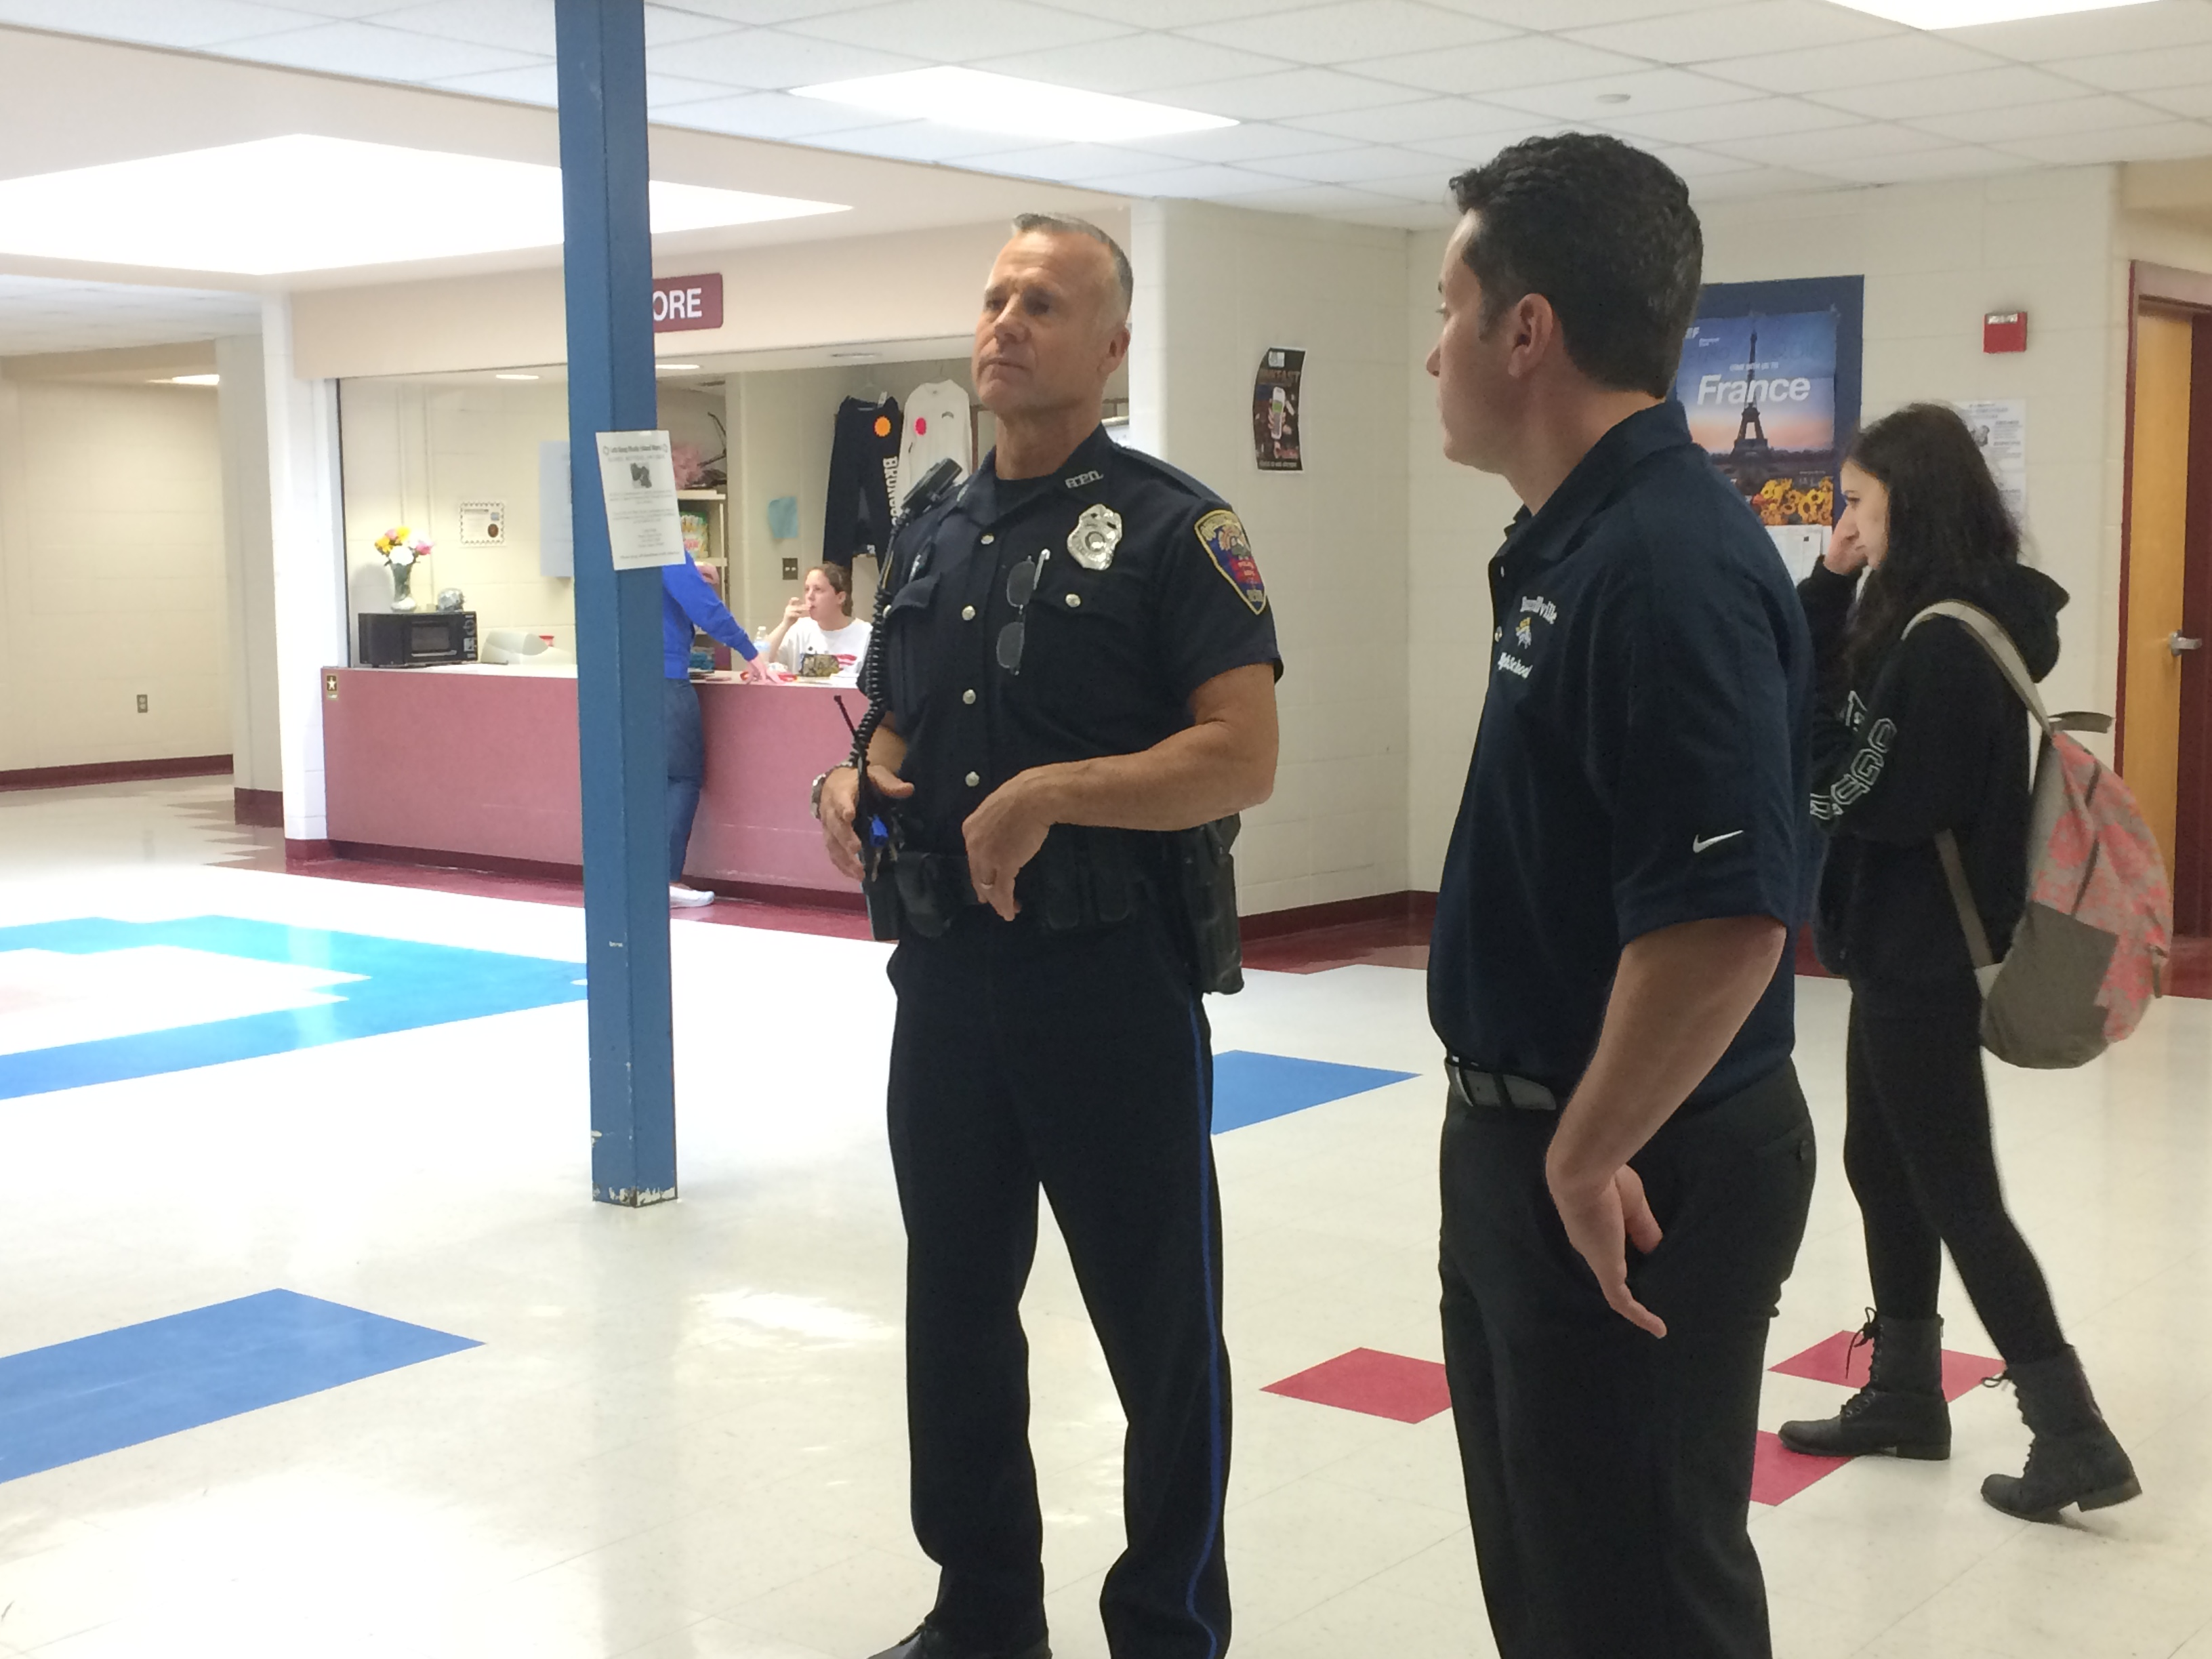 Resource Officer David Beauchemin with Assistant Principal Dave Alba in a hallway at Burrillville High School.